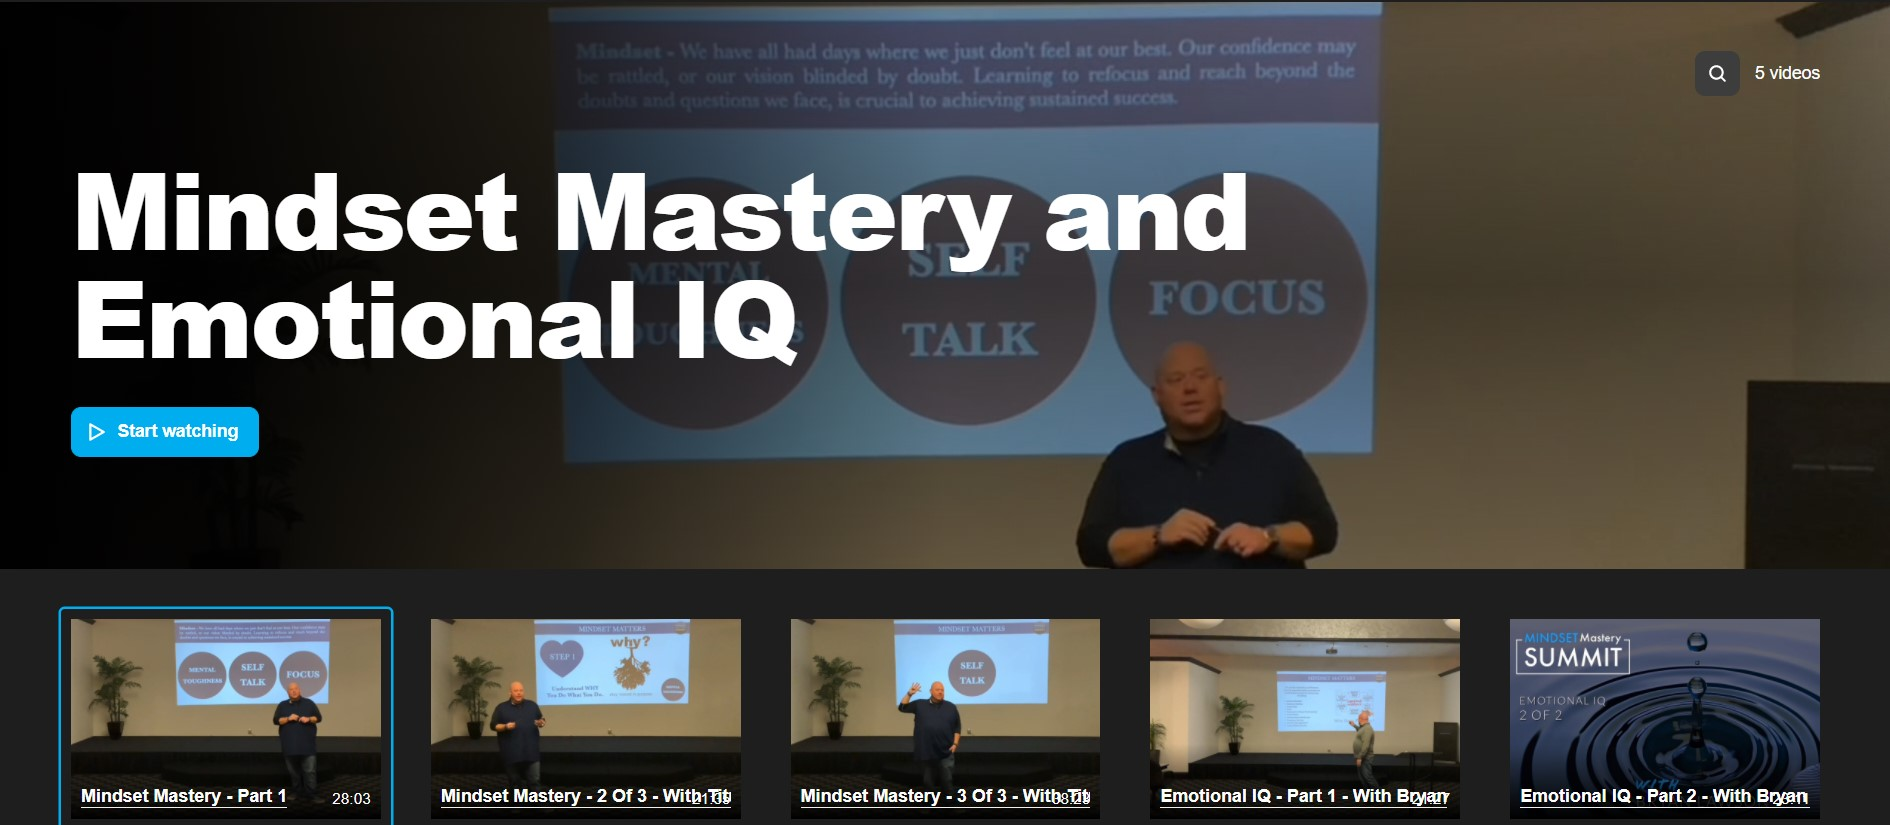 Mindset Mastery and Emotional IQ Video Course